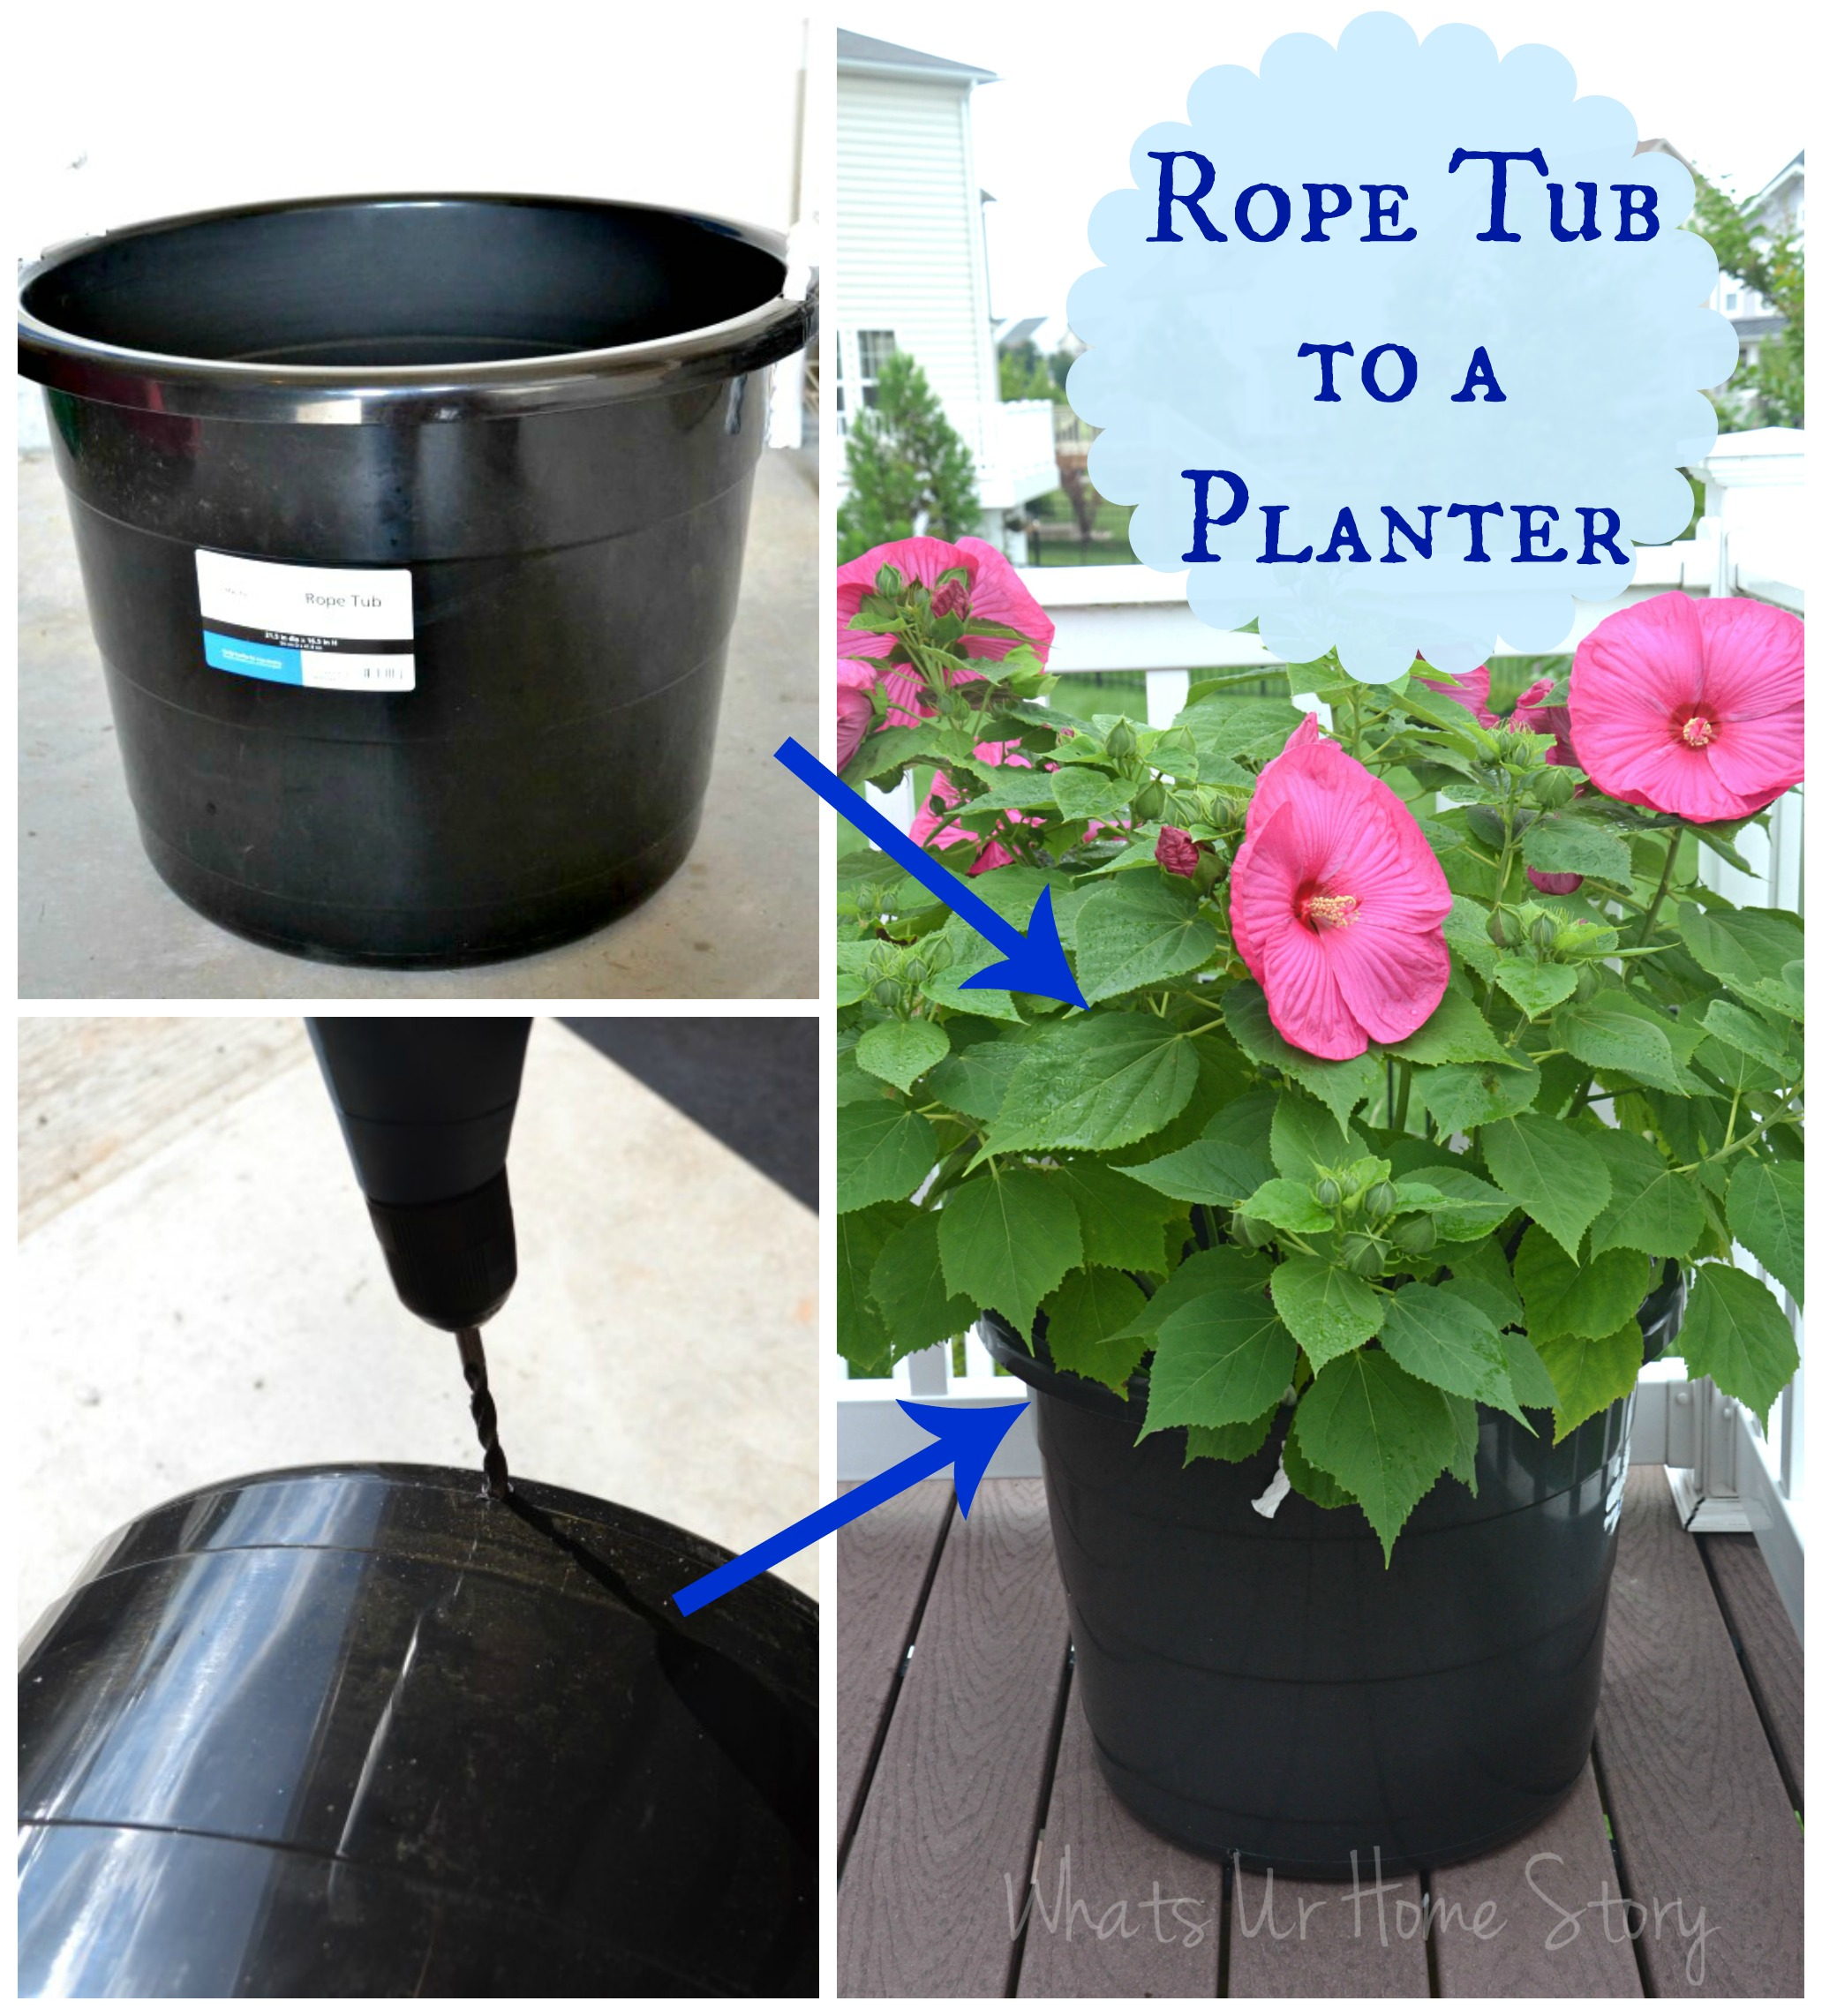 The Cheapest Way To Diy Large Plant Pots Whats Ur Home Story